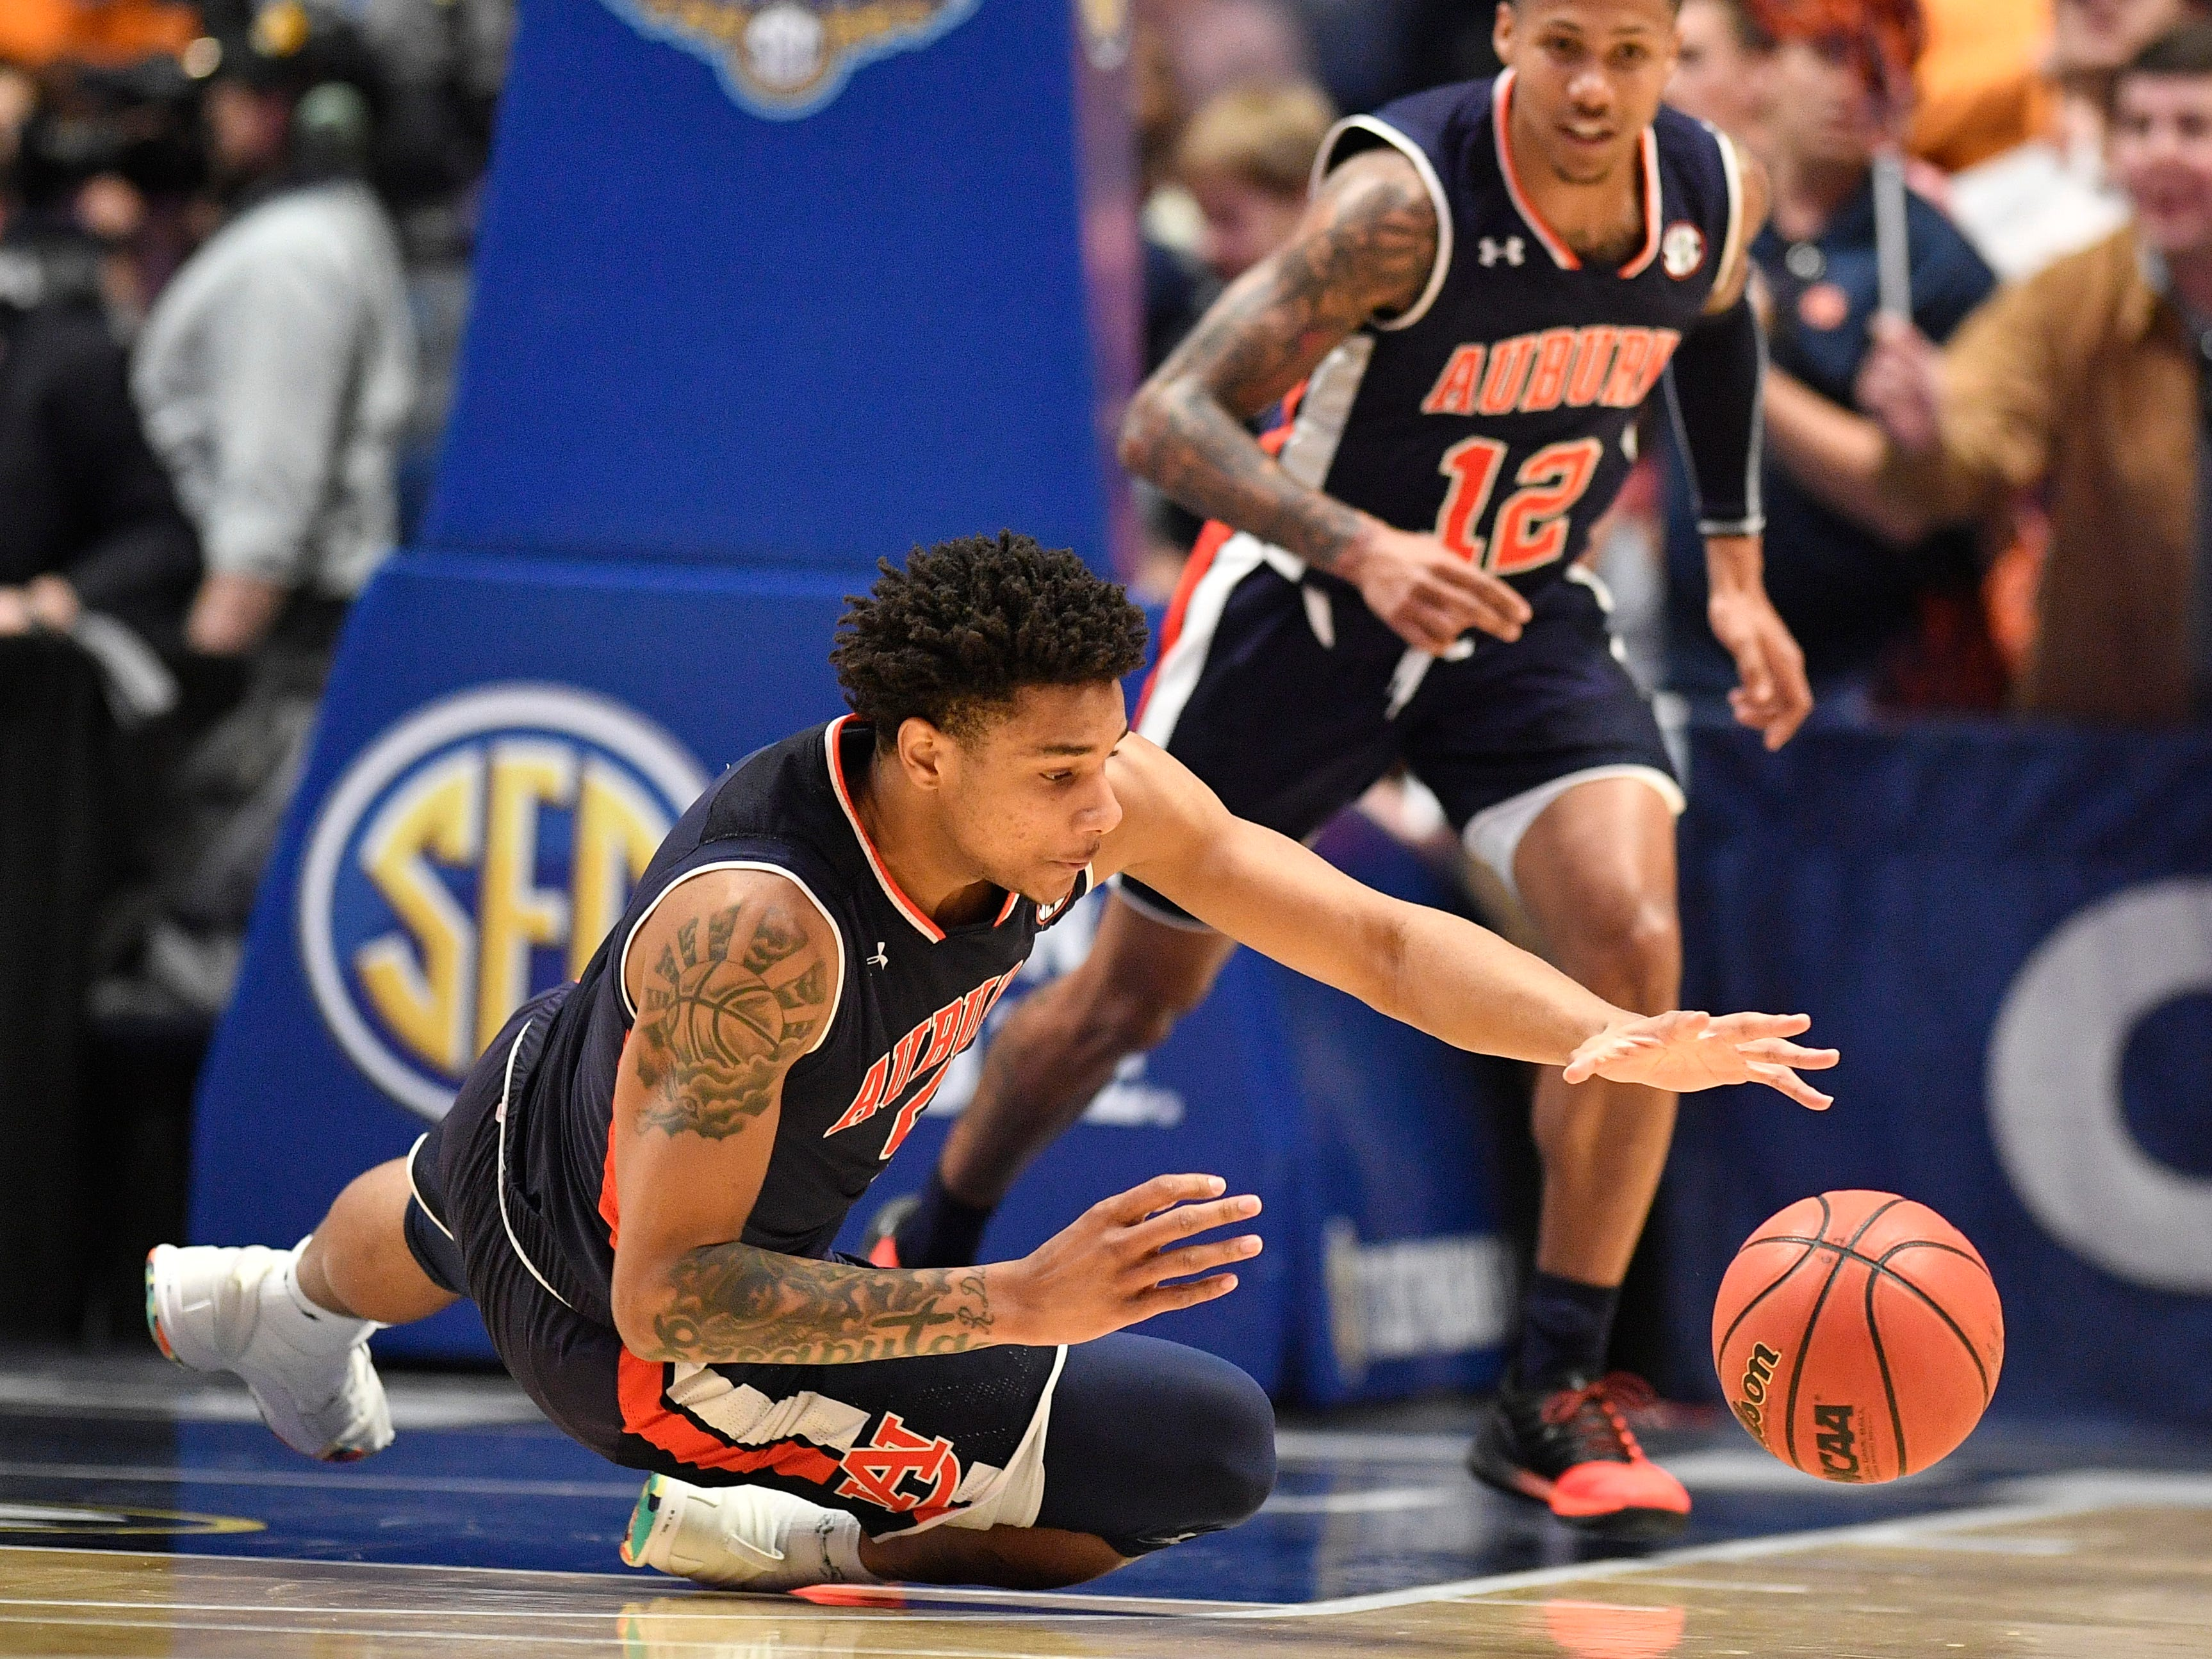 Auburn forward Chuma Okeke (5) reaches for a ball during the first half of the SEC Men's Basketball Tournament championship game against Tennessee at Bridgestone Arena in Nashville, Tenn., Sunday, March 17, 2019.